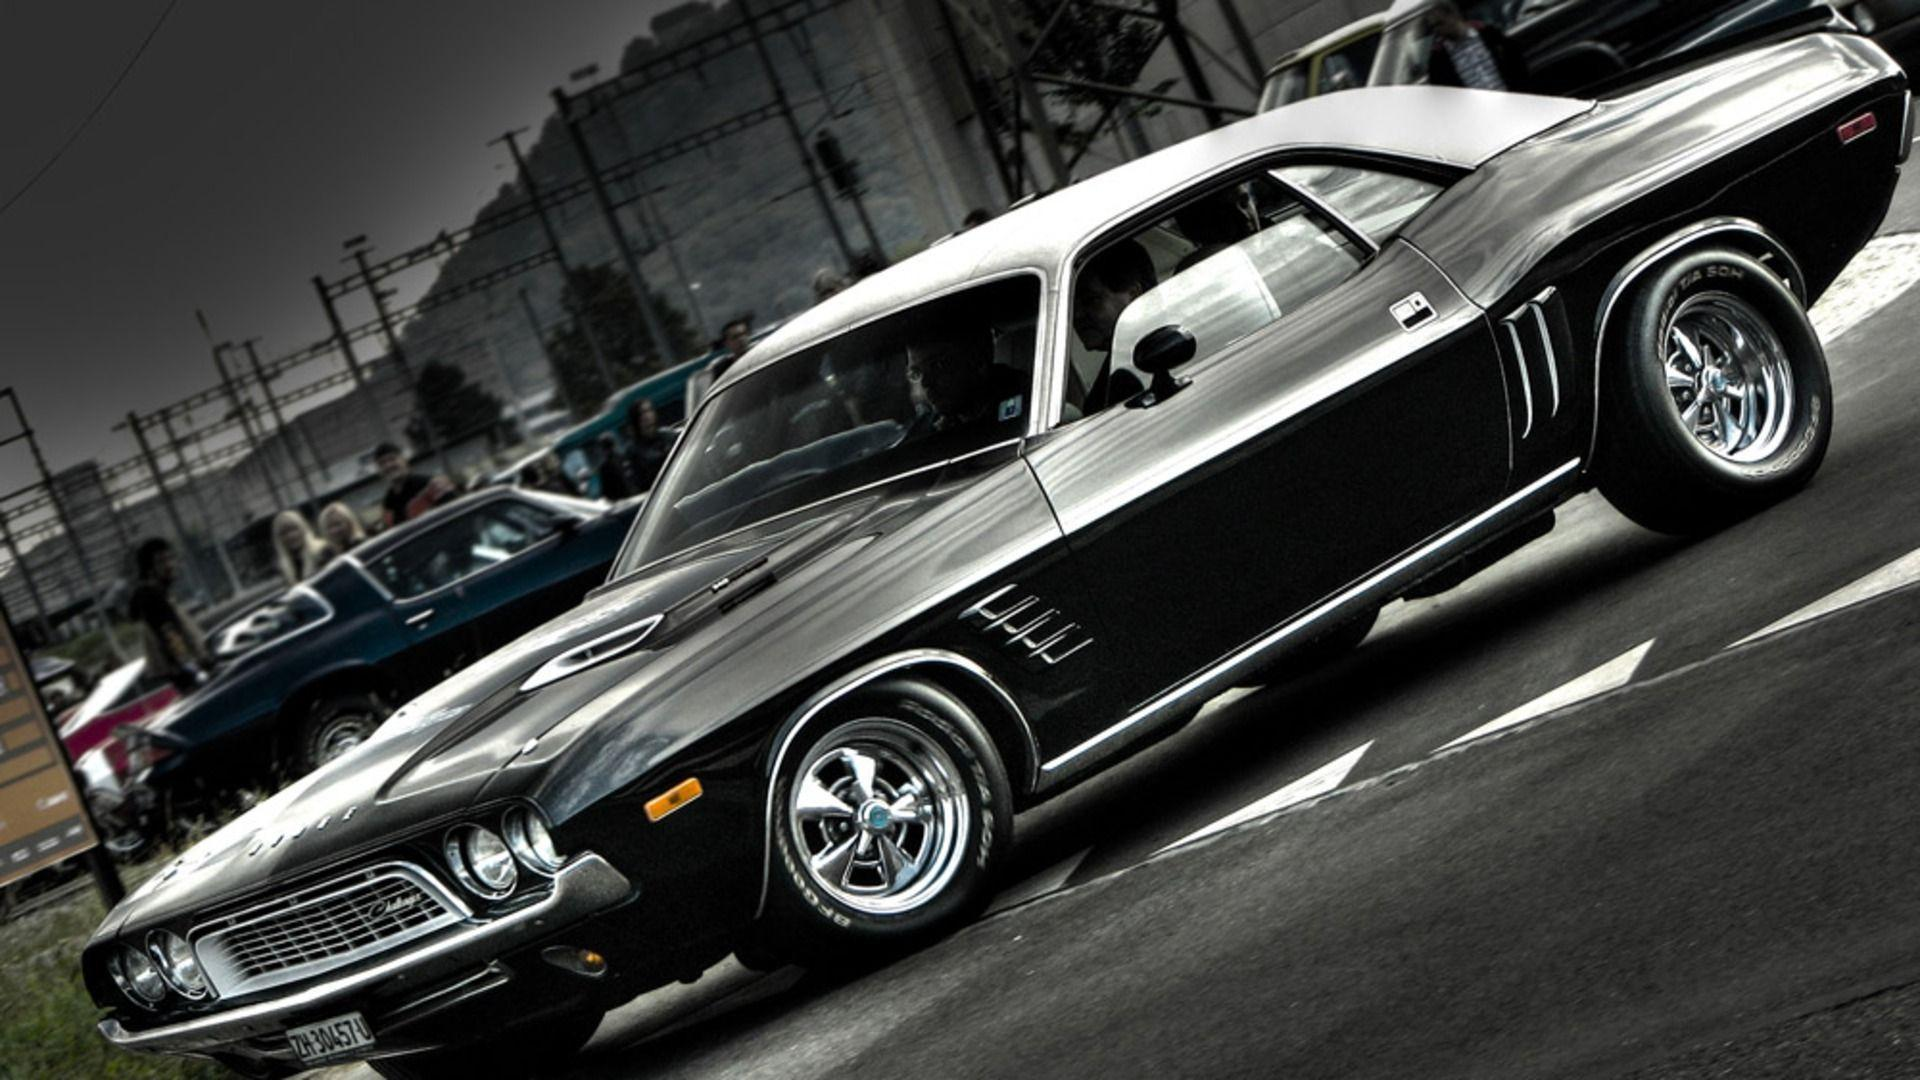 Muscle Car Wallpapers - Taringa!